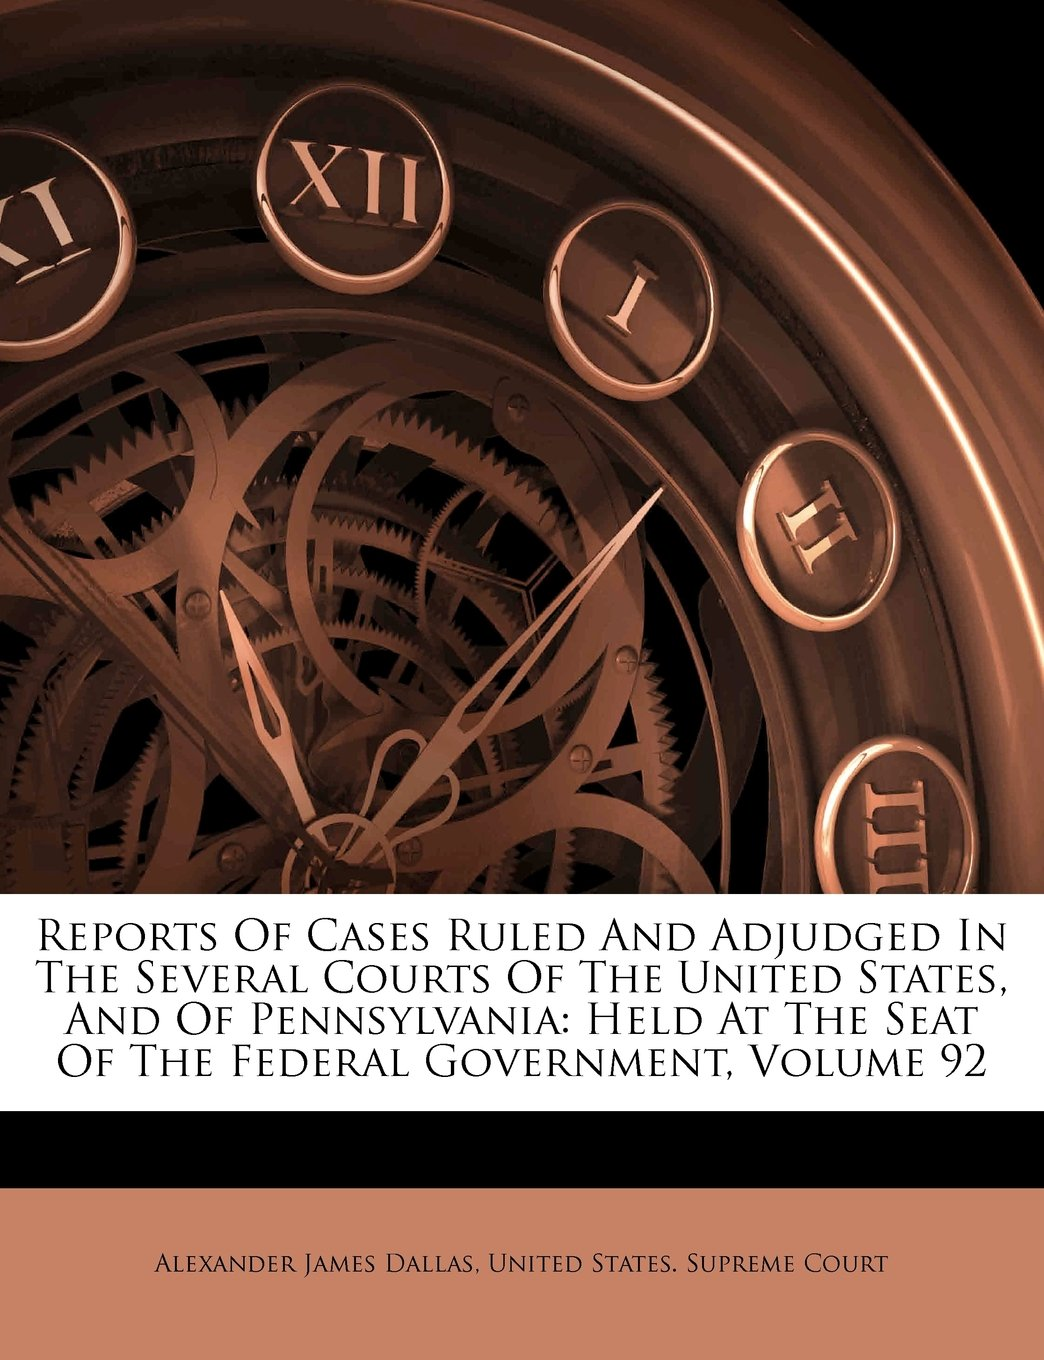 Download Reports Of Cases Ruled And Adjudged In The Several Courts Of The United States, And Of Pennsylvania: Held At The Seat Of The Federal Government, Volume 92 pdf